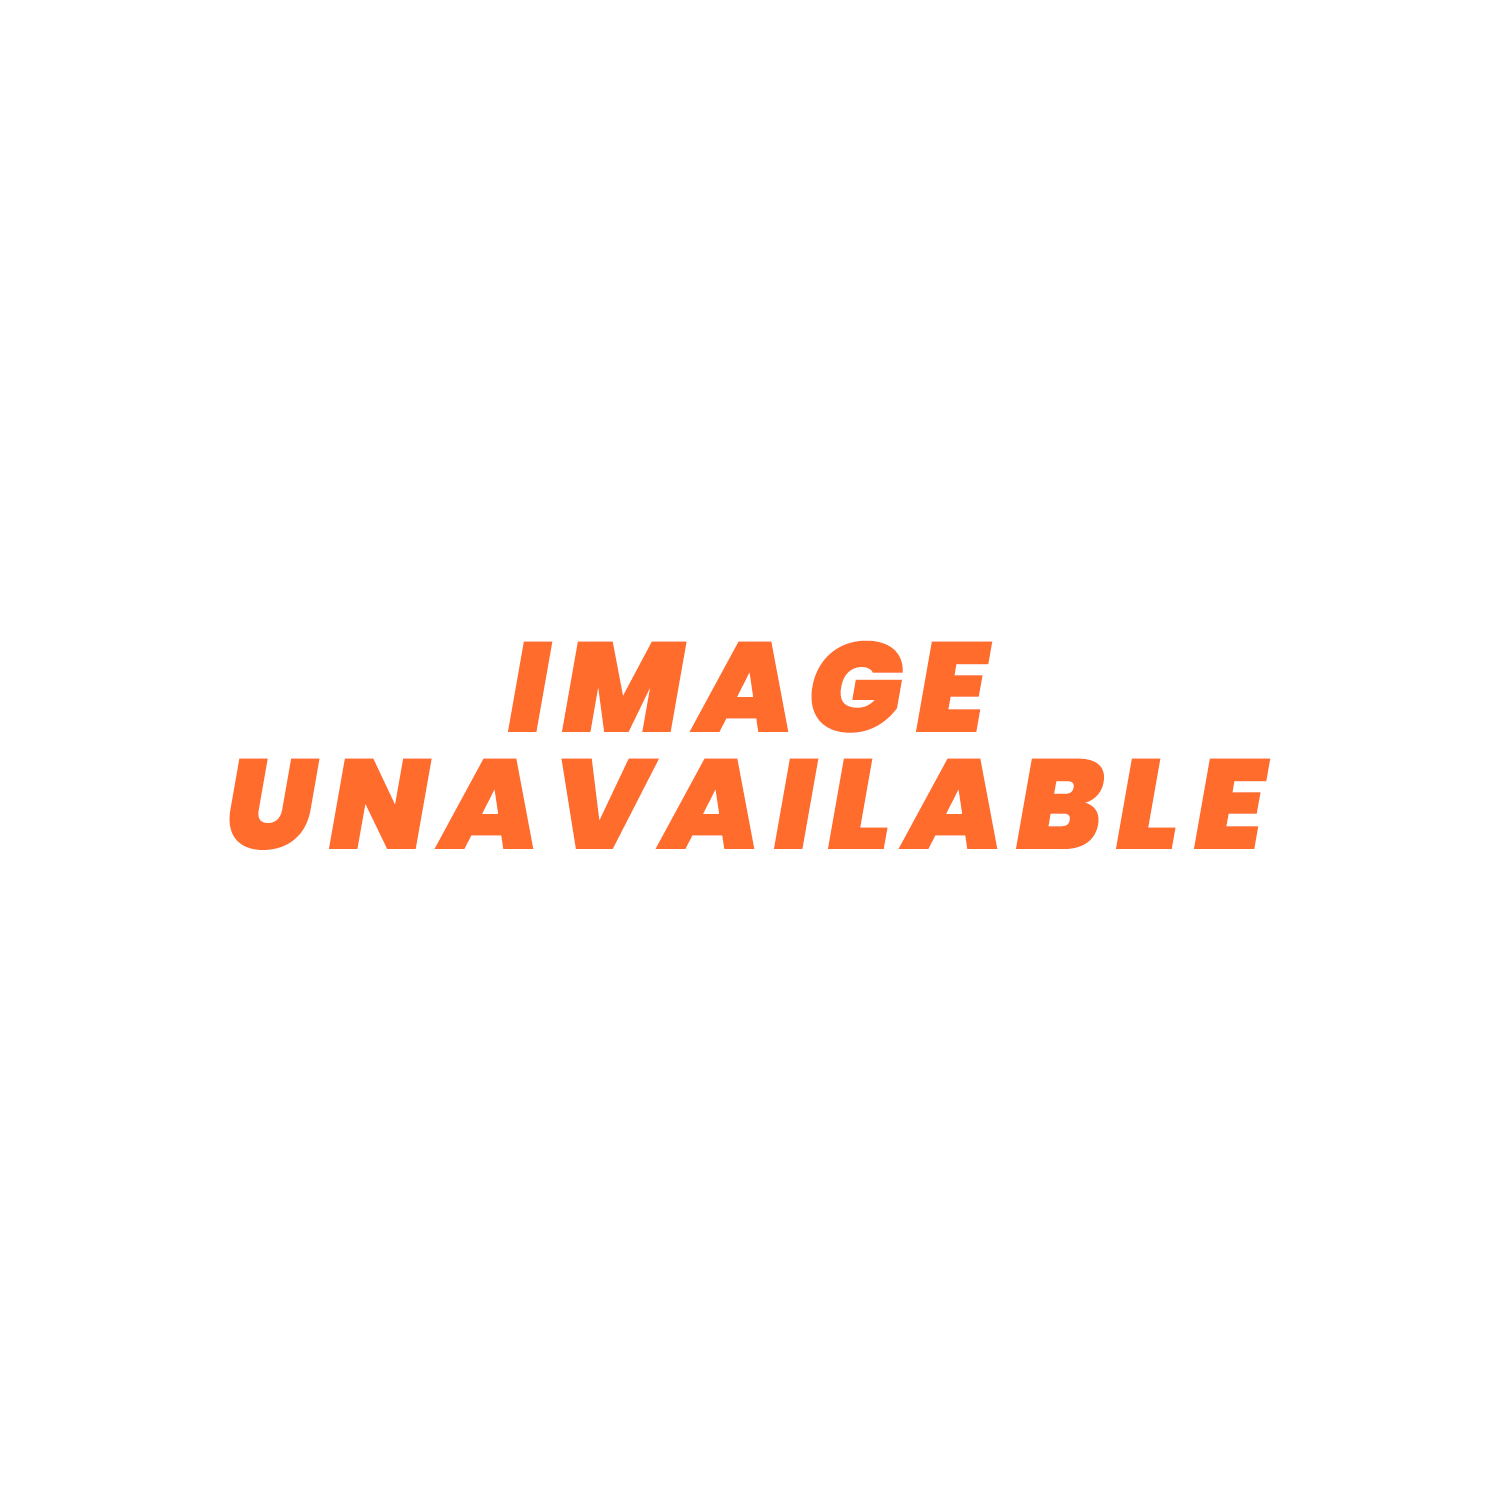 Replacement Rear O-Ring for K20/K24 Electric Water Plate Kit